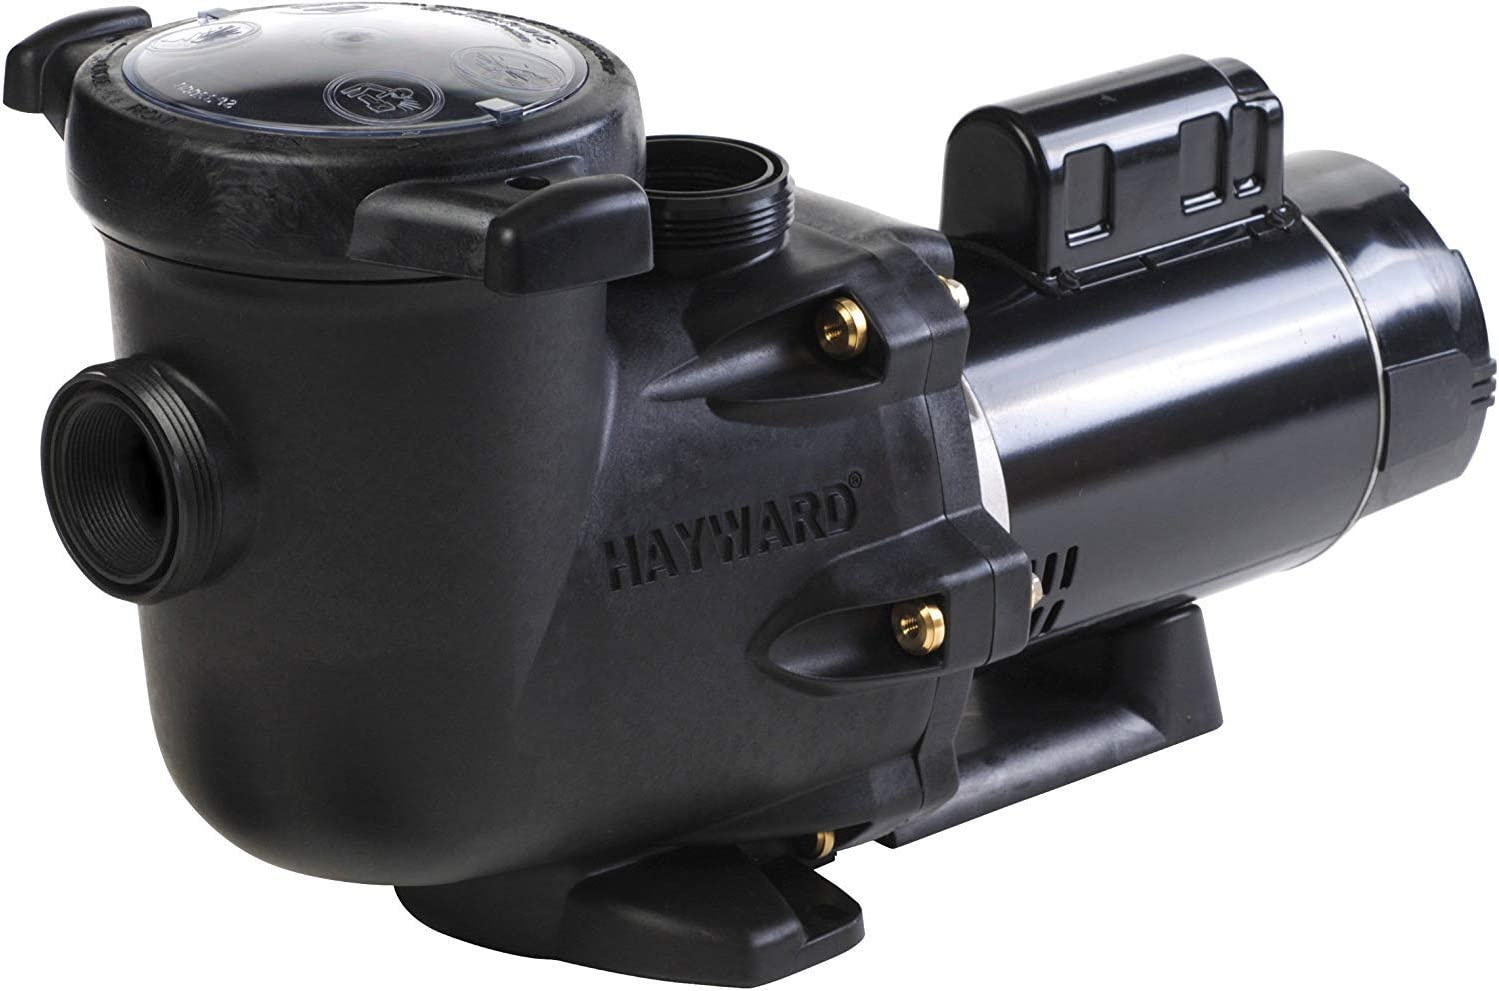 Hayward W3SP3215X20 TriStar Pool Pump, 2 HP Max Rate